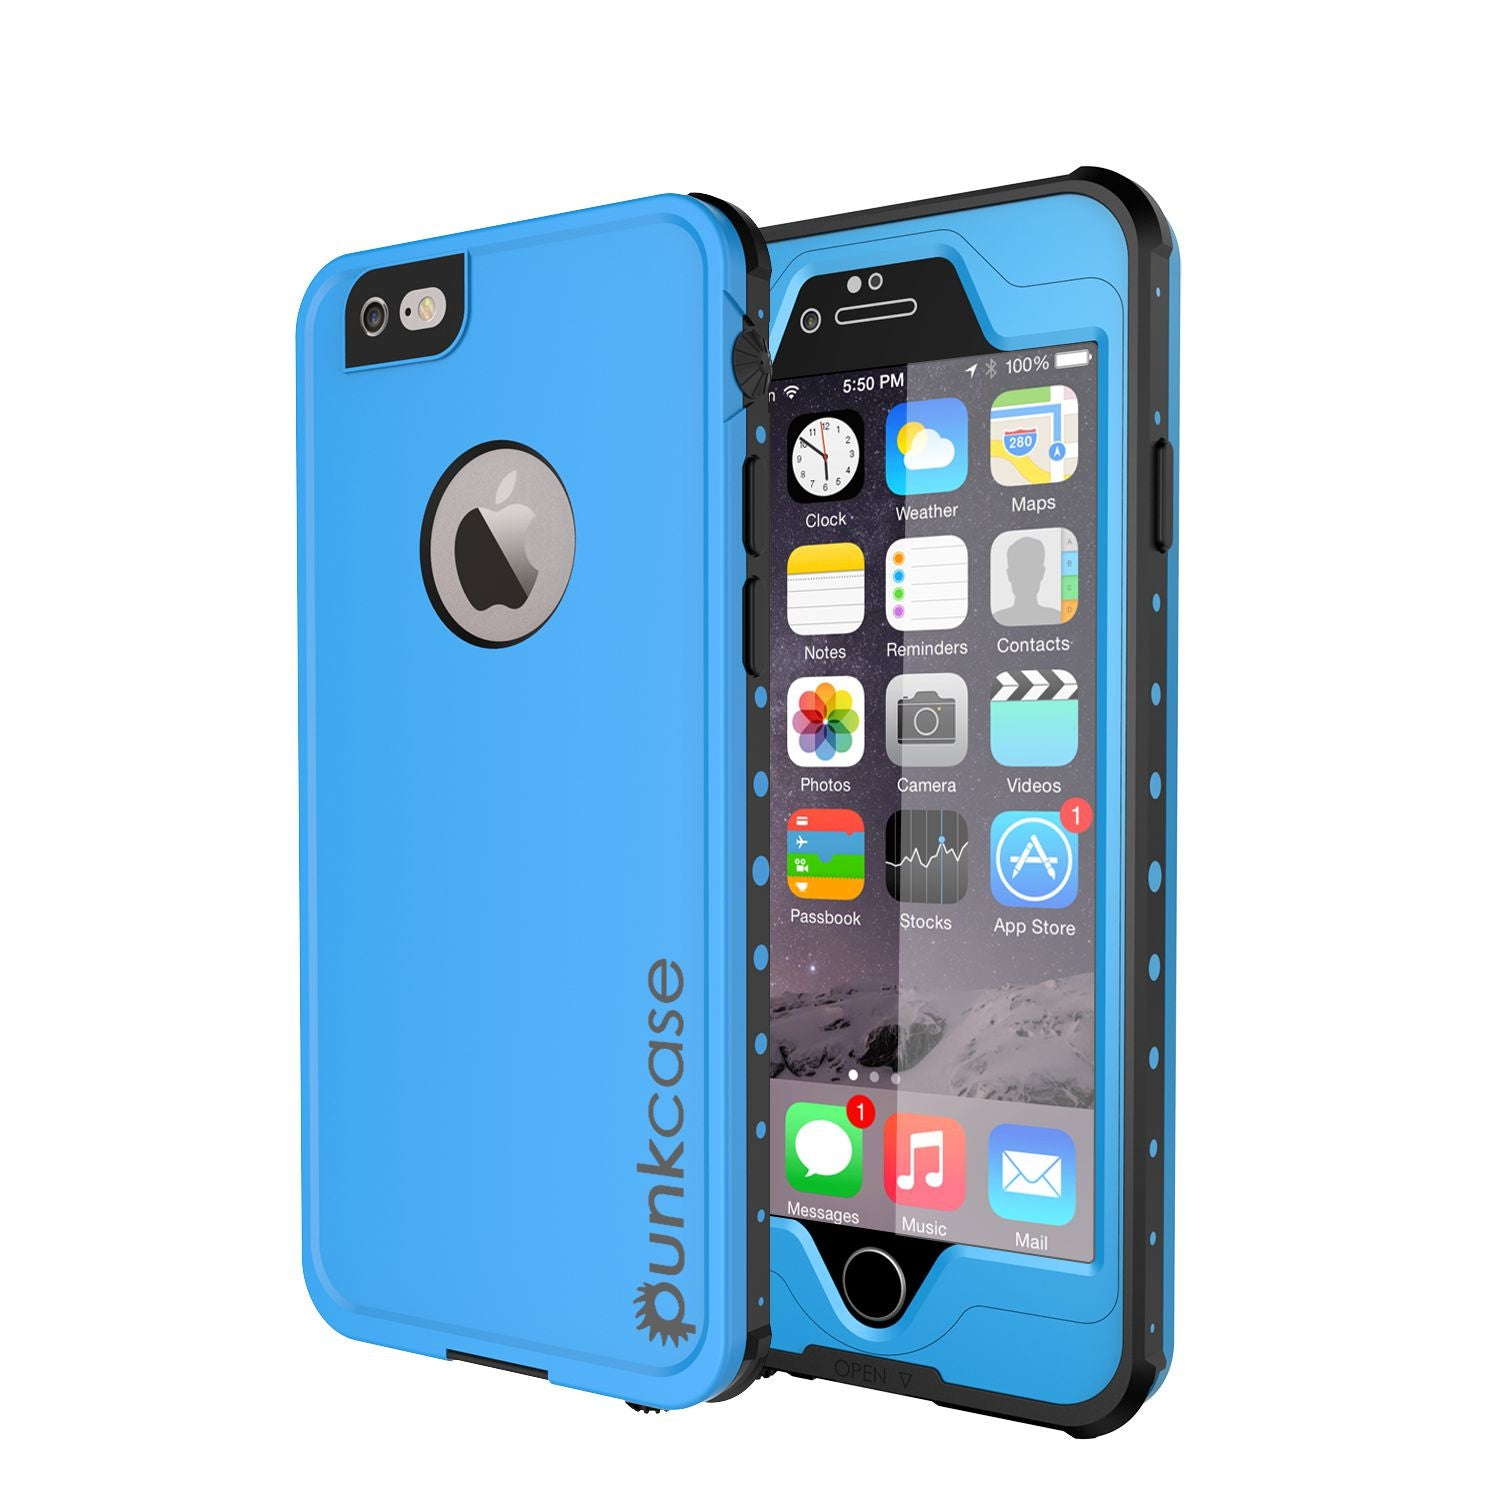 pretty nice 26579 46a6b iPhone 6S+/6+ Plus Waterproof Case, PUNKcase StudStar Light Blue w/  Attached Screen Protector